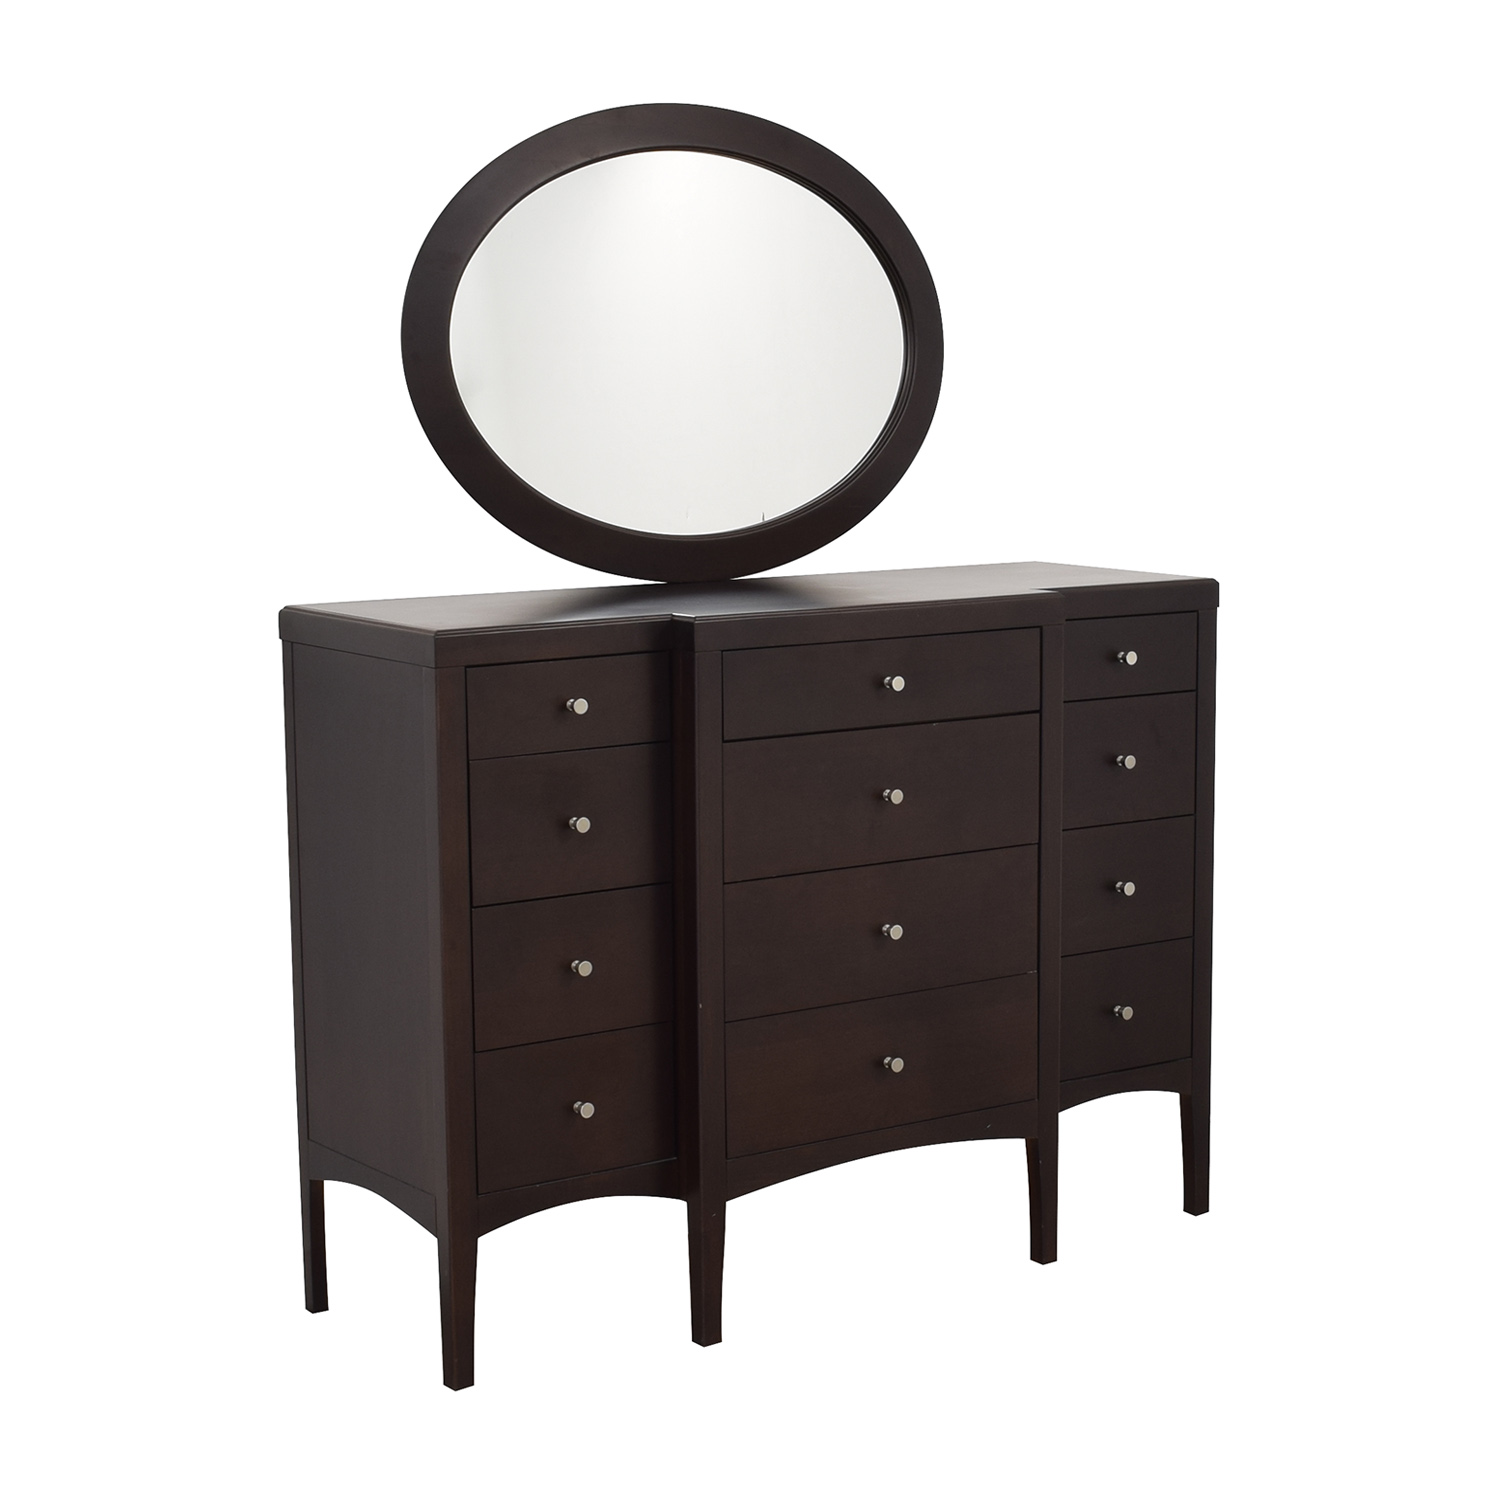 Macy's Macy's Chest of Drawers and Mirror ct